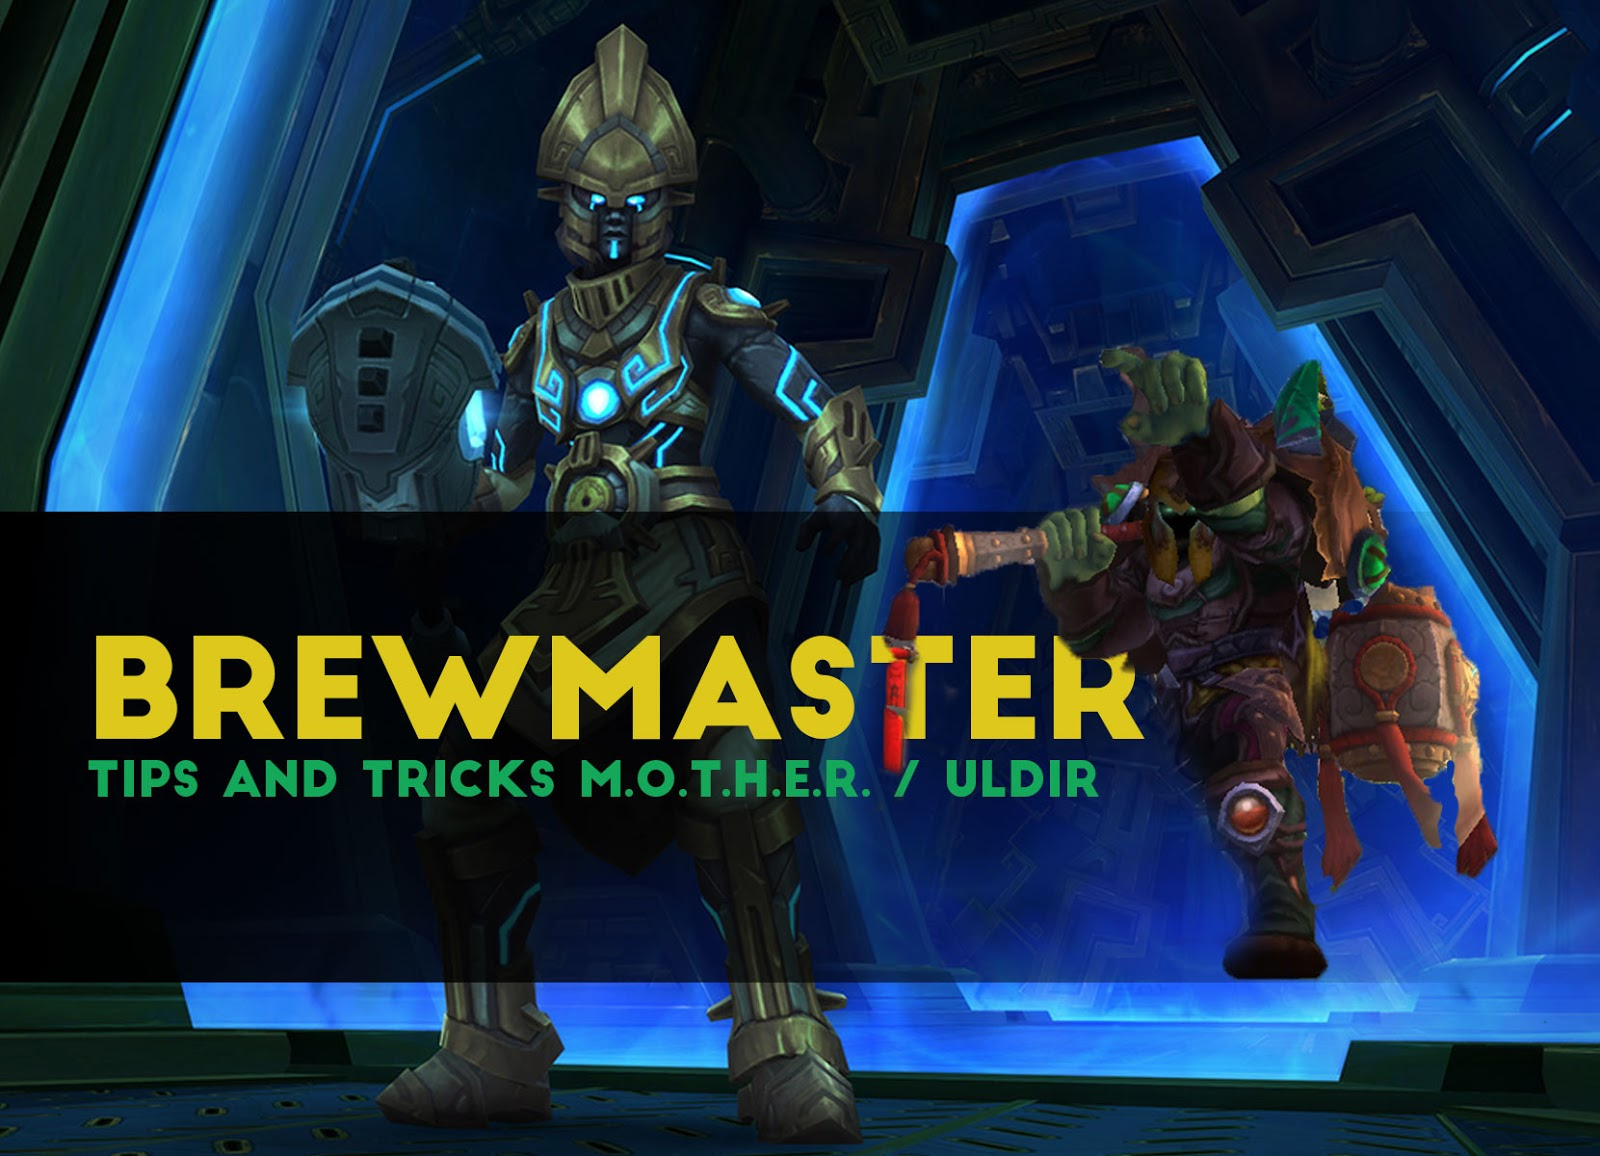 BrewMaster Tips and Tricks M.O.T.H.E.R. / ULDIR - Patch 8.0